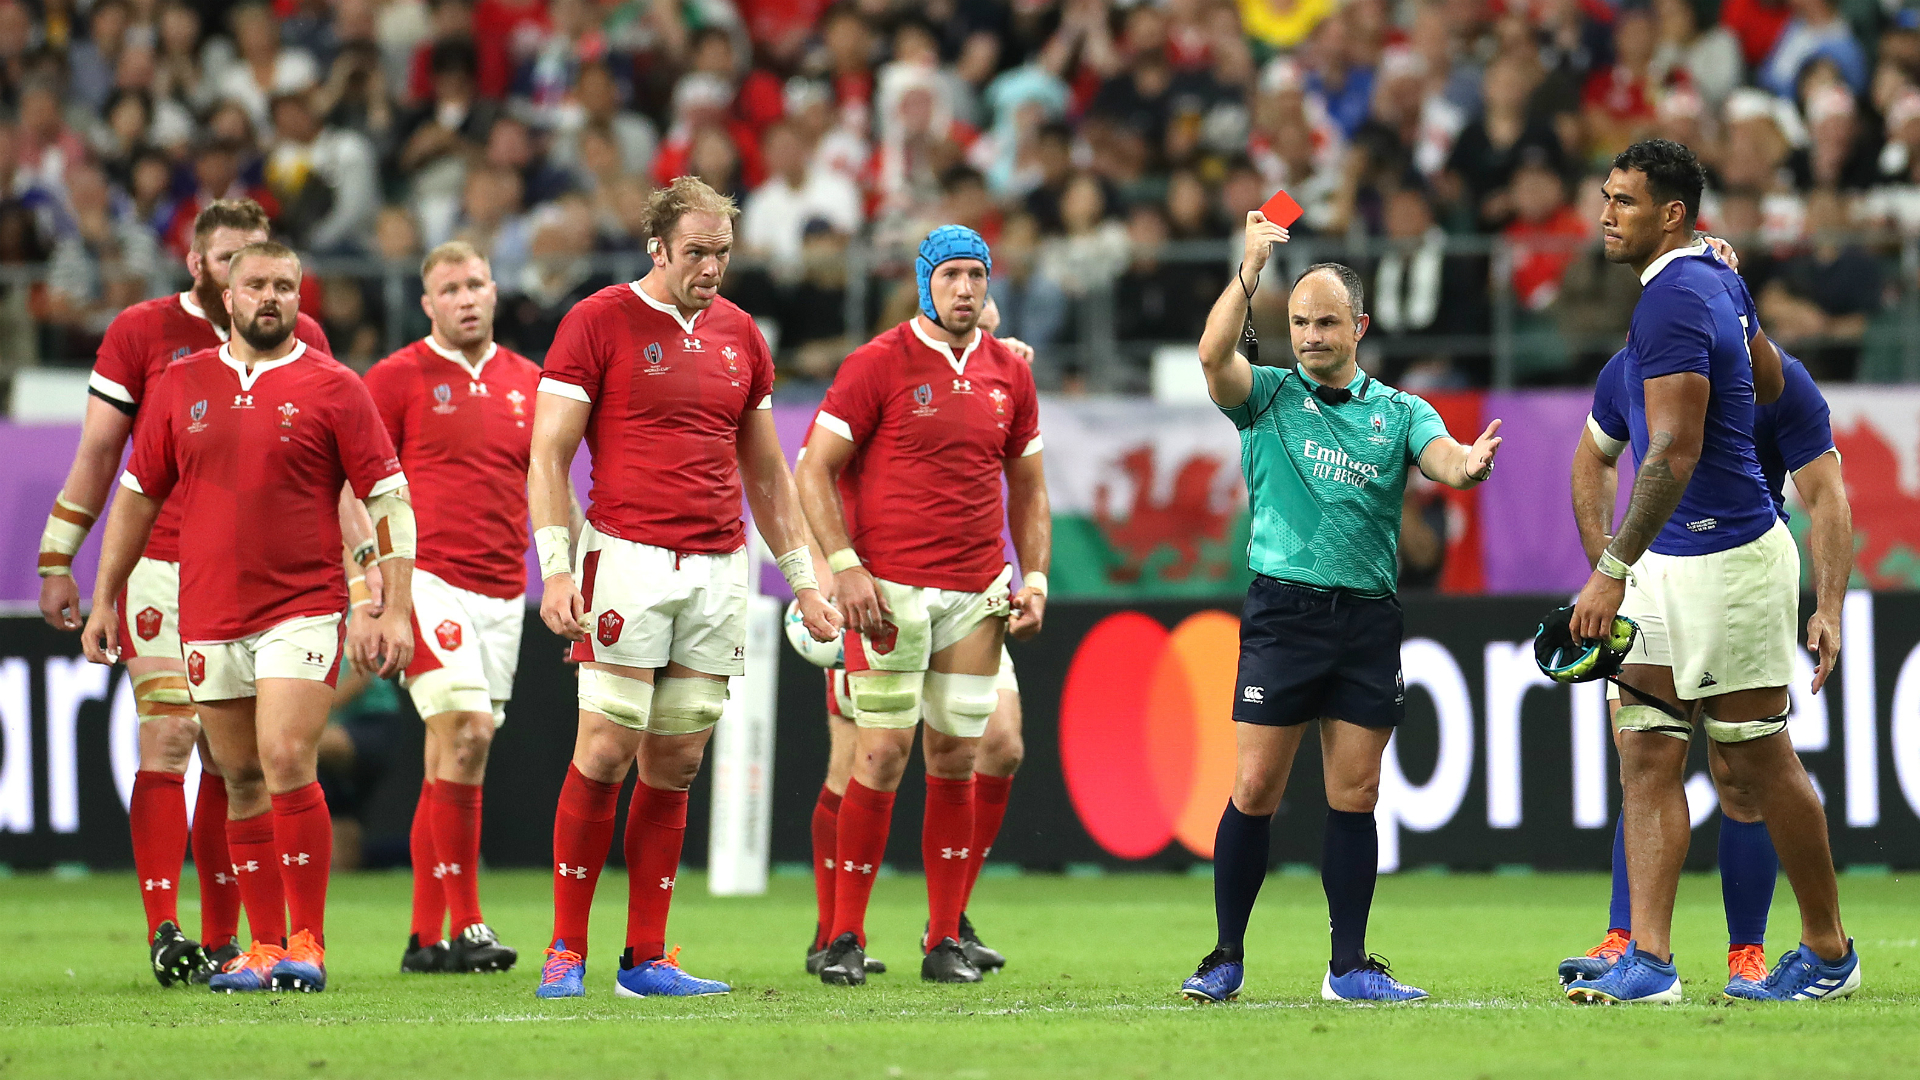 Rugby World Cup 2019: Wales 20-19 France